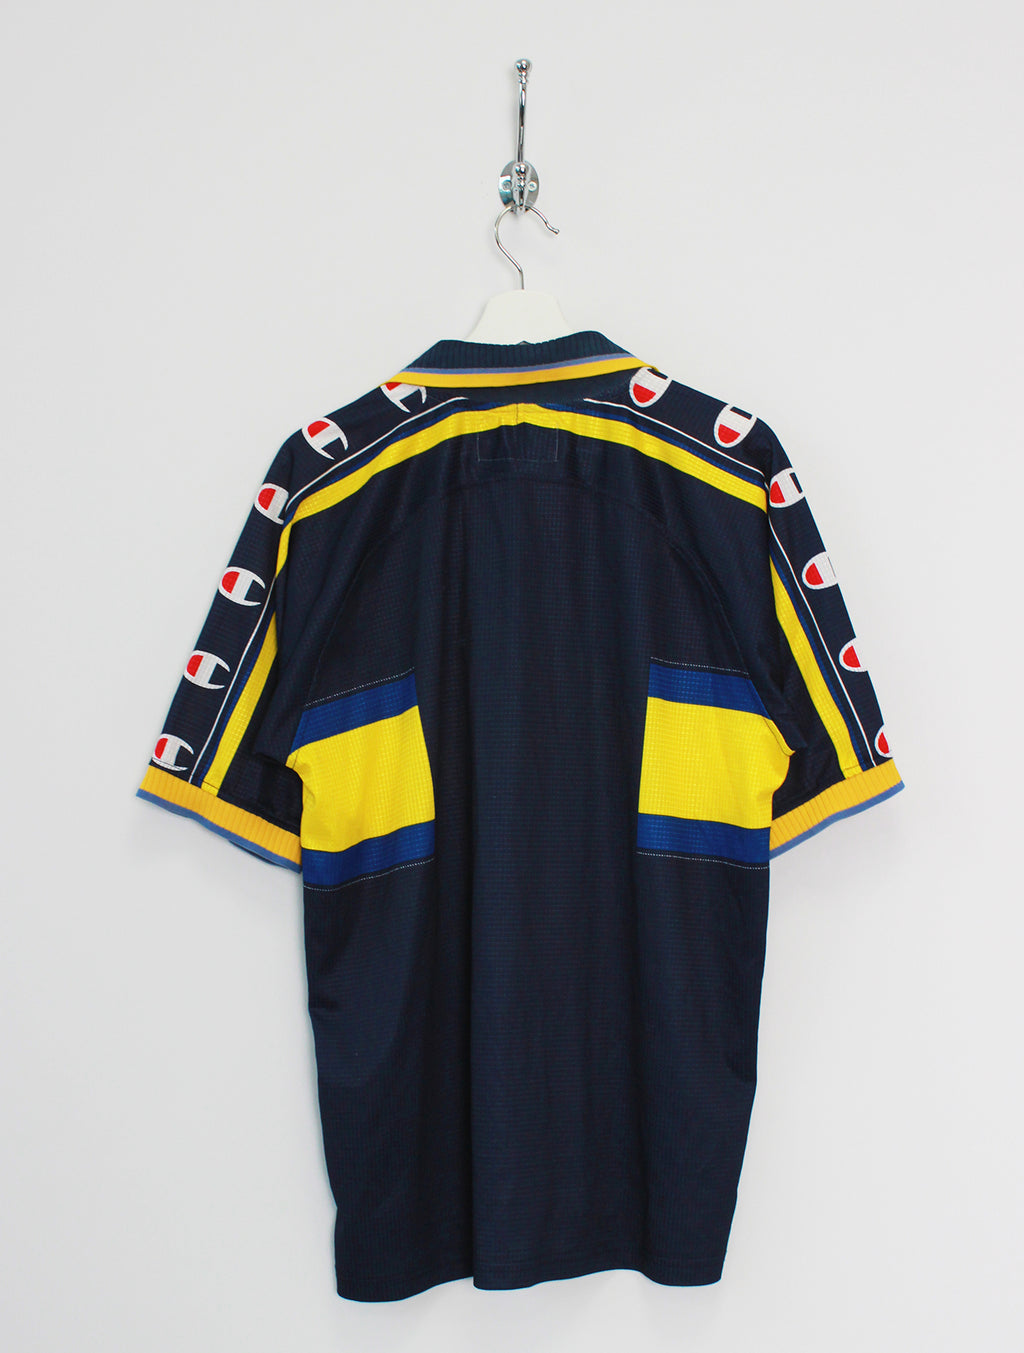 Champion Parma Football Shirt (XL)